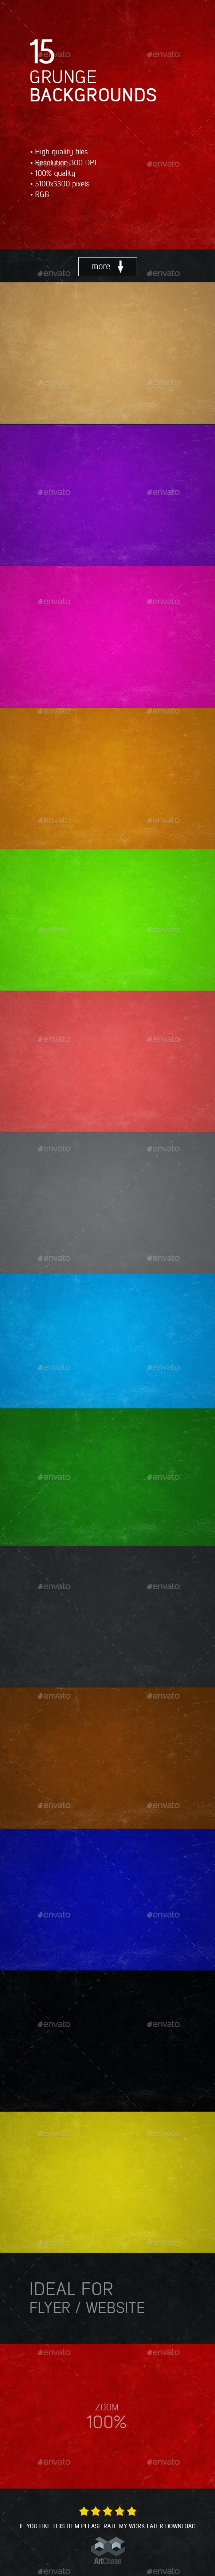 15 Grunge Backgrounds - Backgrounds Graphics